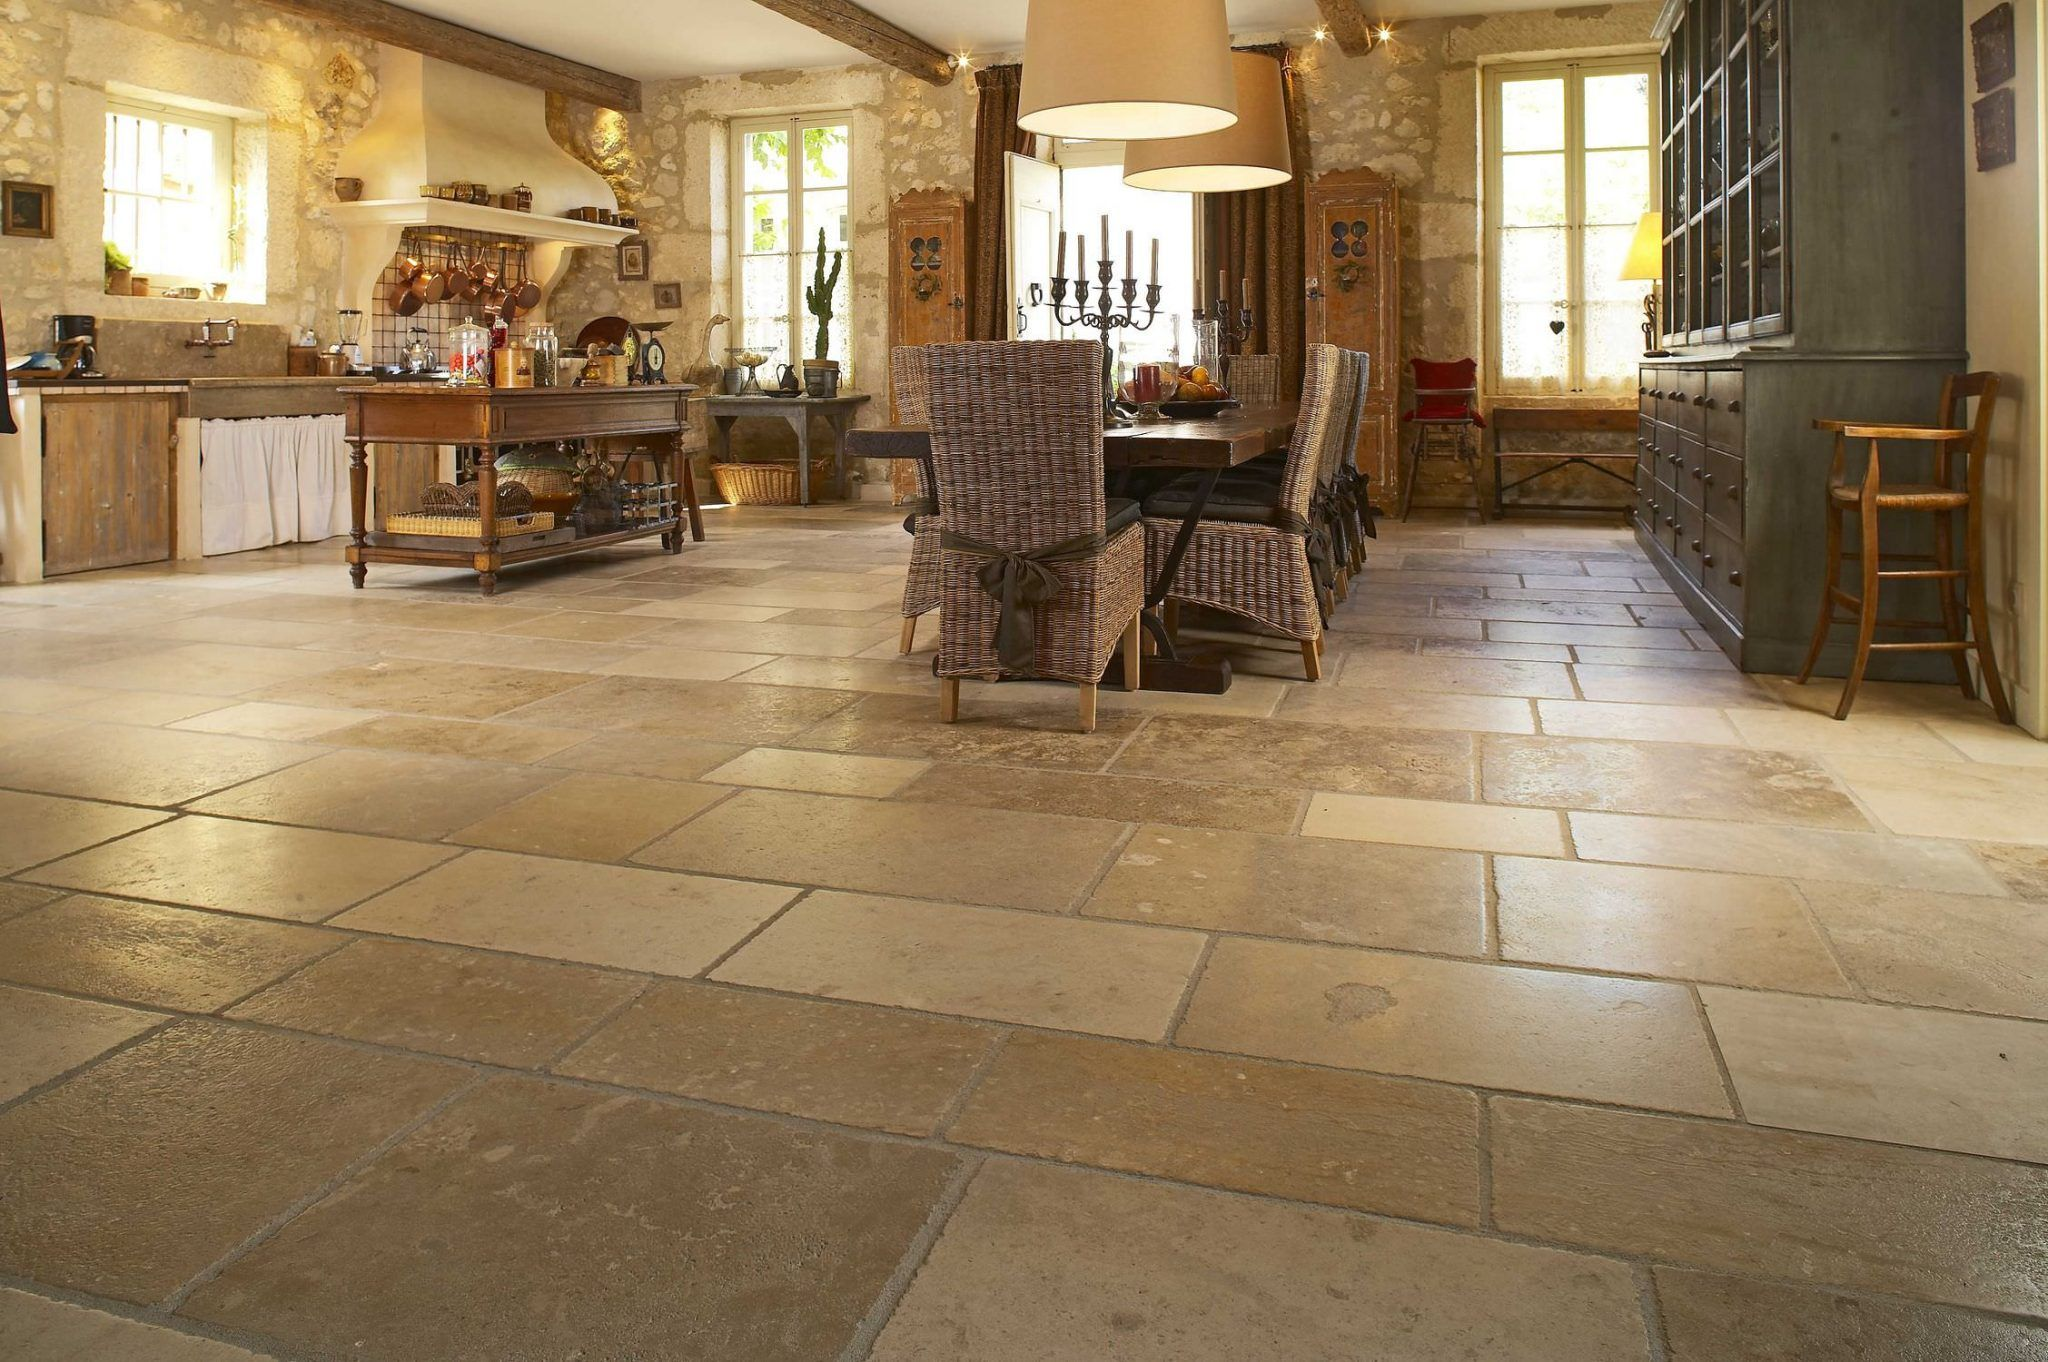 How to maintain and prolong natural stone flooring ecms ltd how to maintain and prolong natural stone flooring dailygadgetfo Images